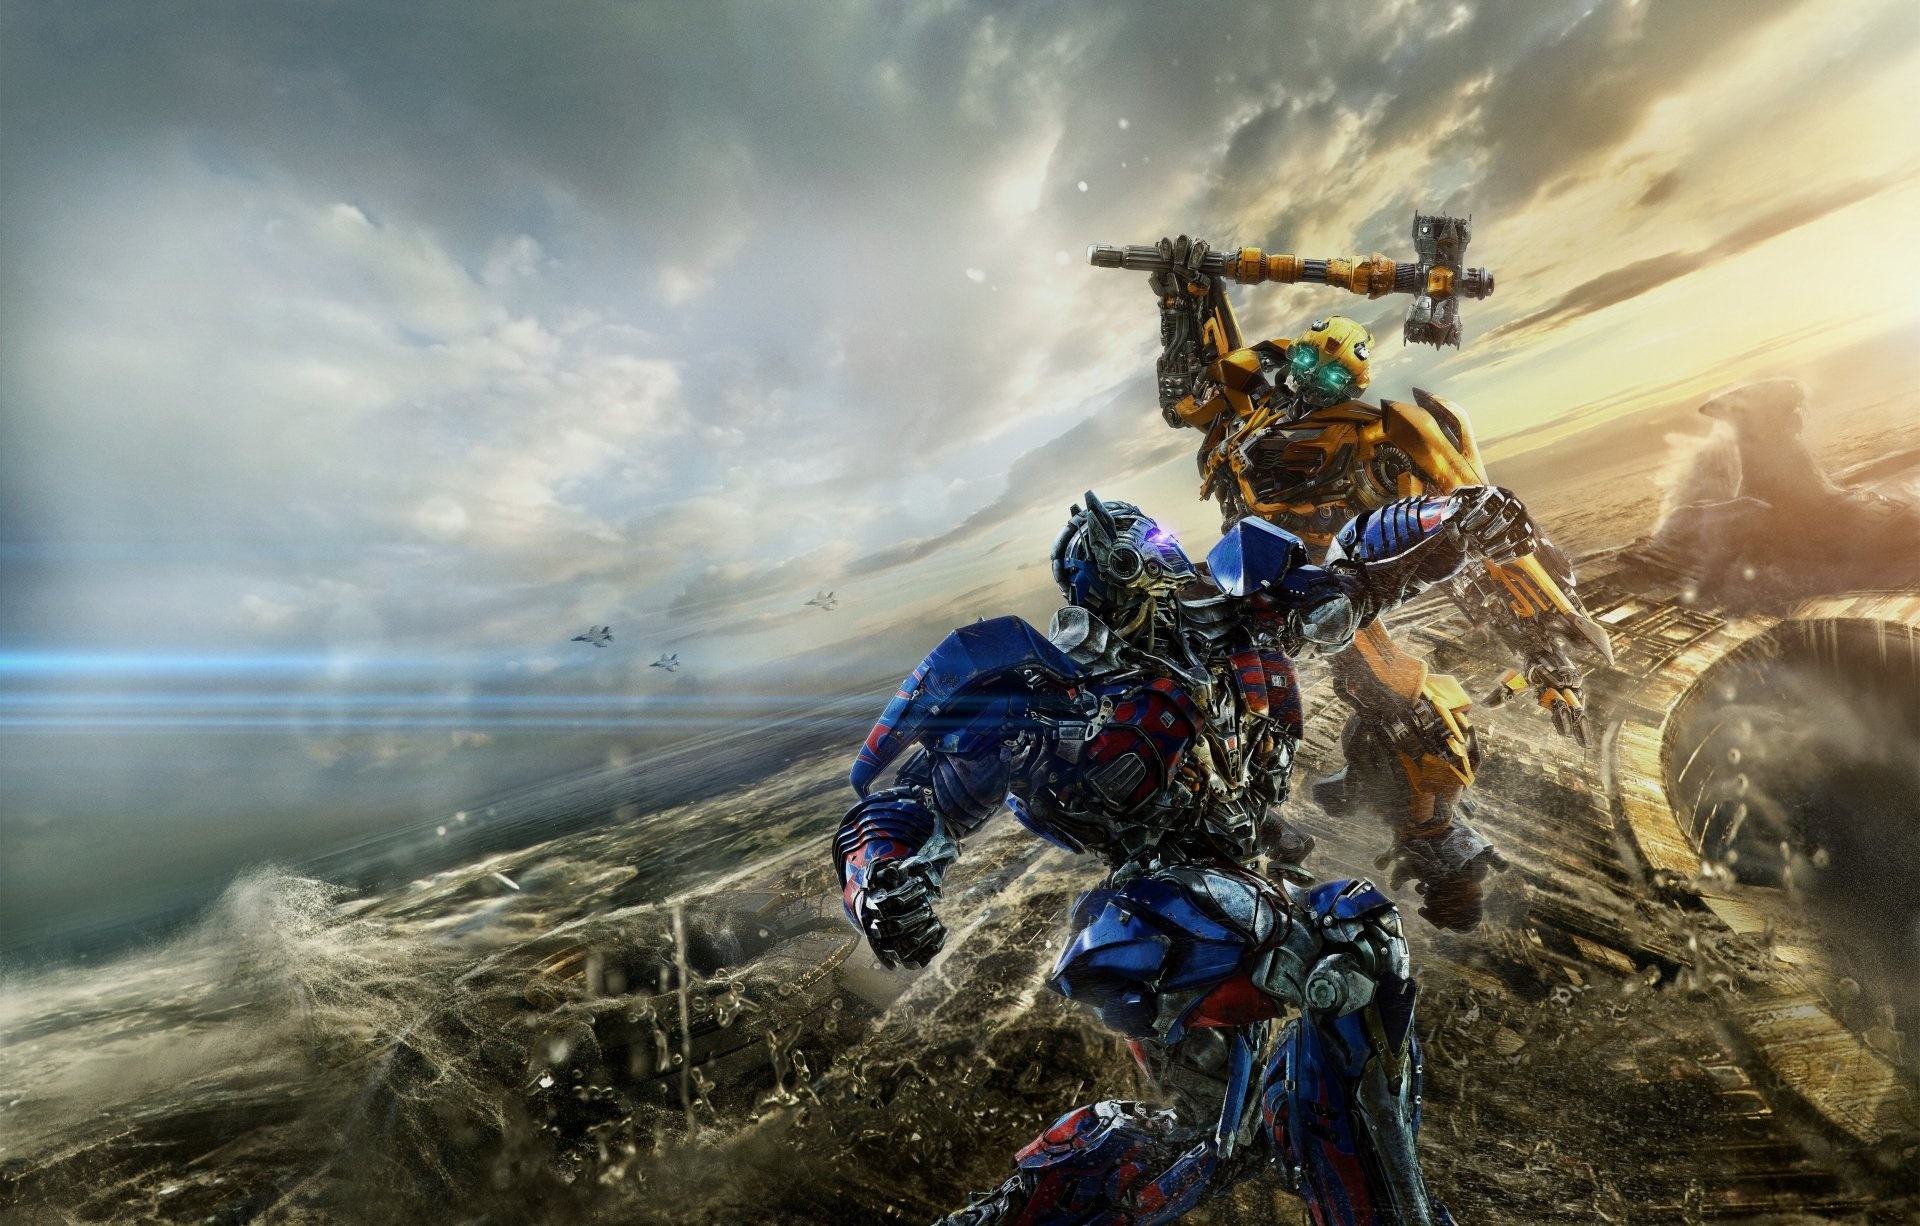 Movie - Transformers: The Last Knight  Optimus Prime Bumblebee (Transformers) Wallpaper